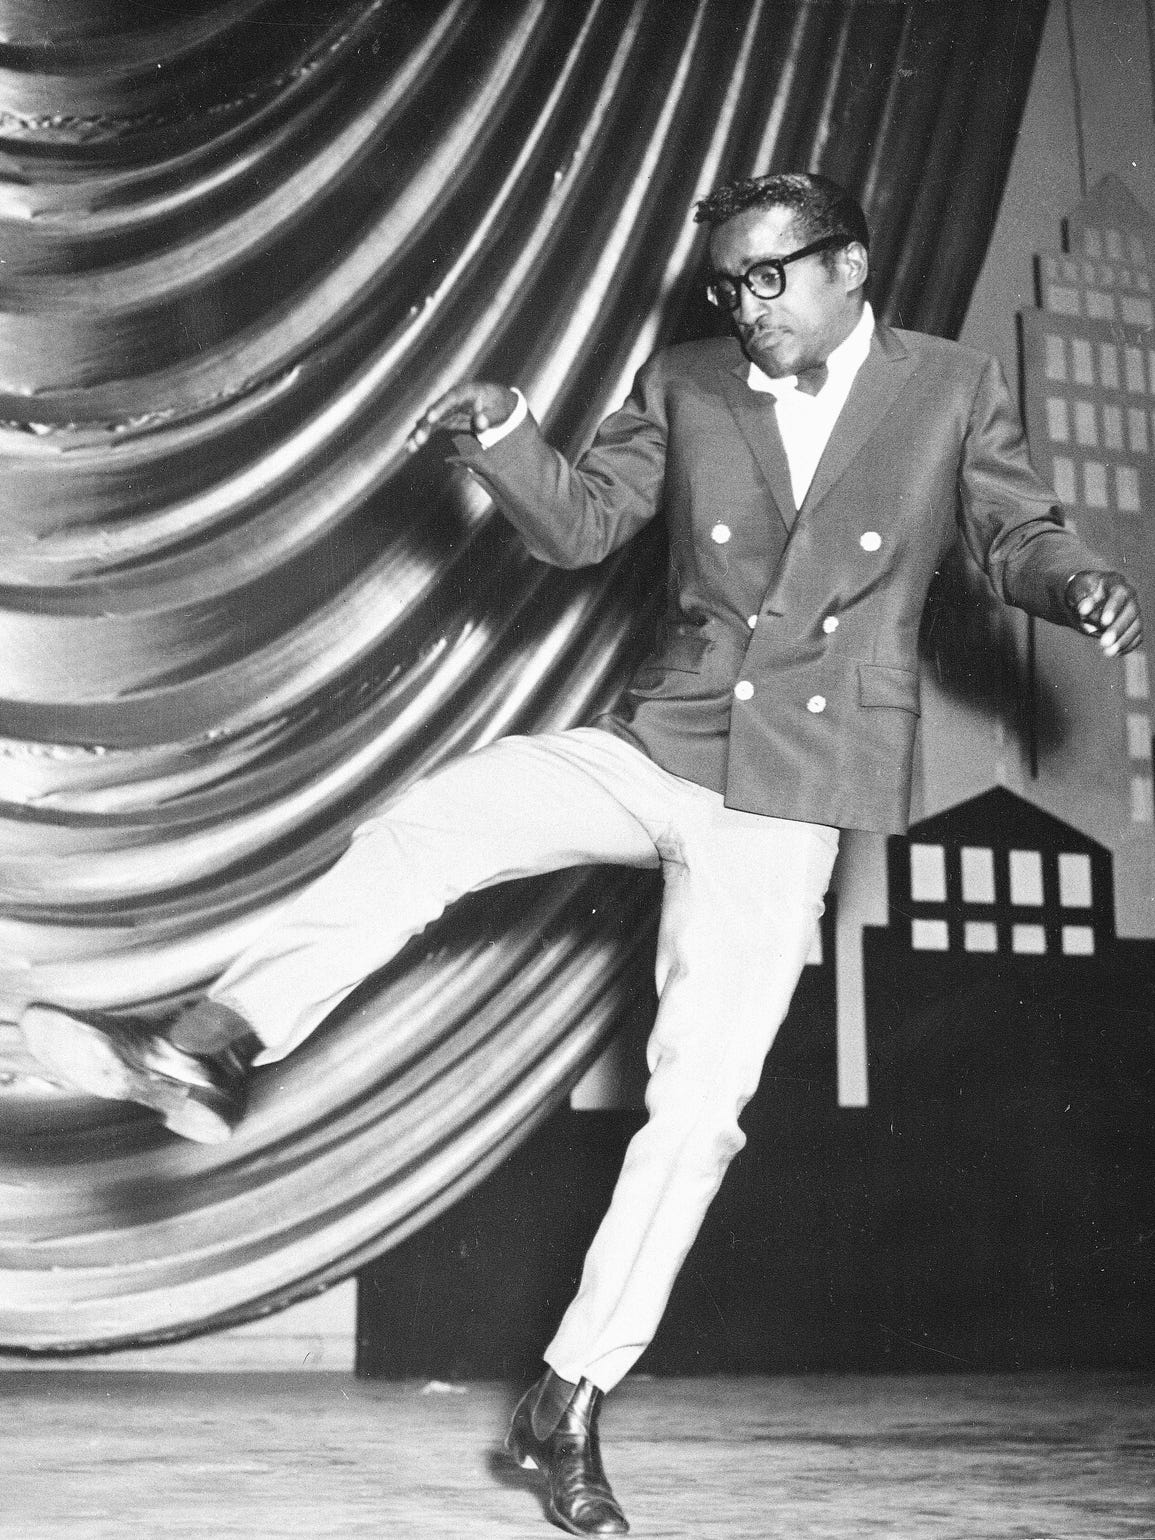 American entertainer Sammy Davis Jr. is seen dancing